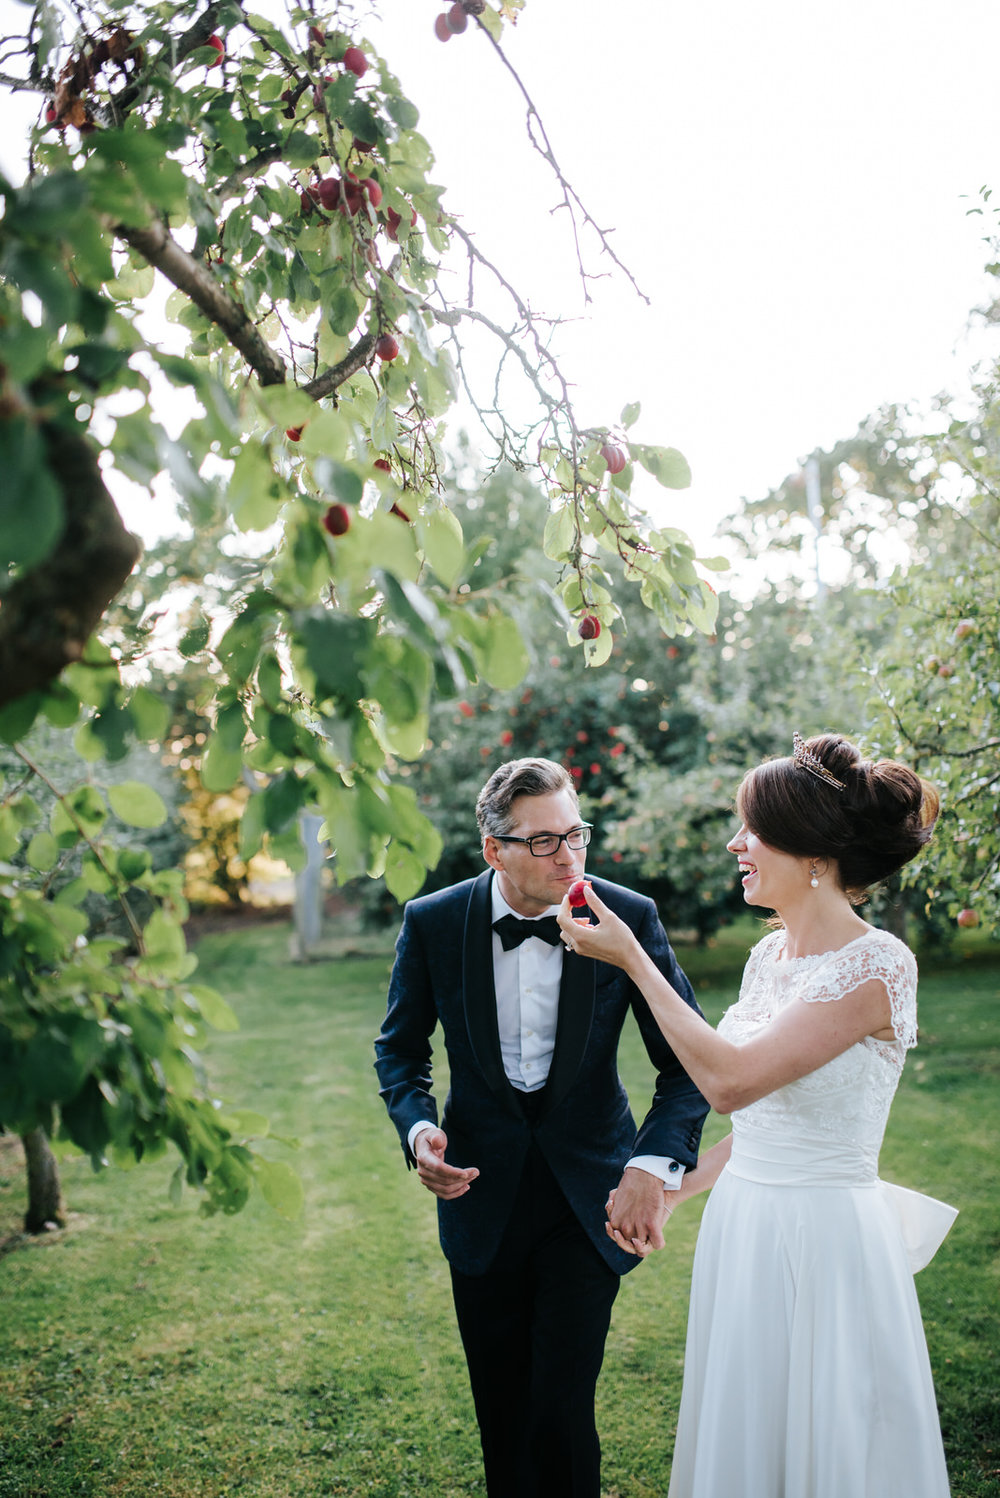 Bride and groom laugh and eat a plum during evening wedding phot